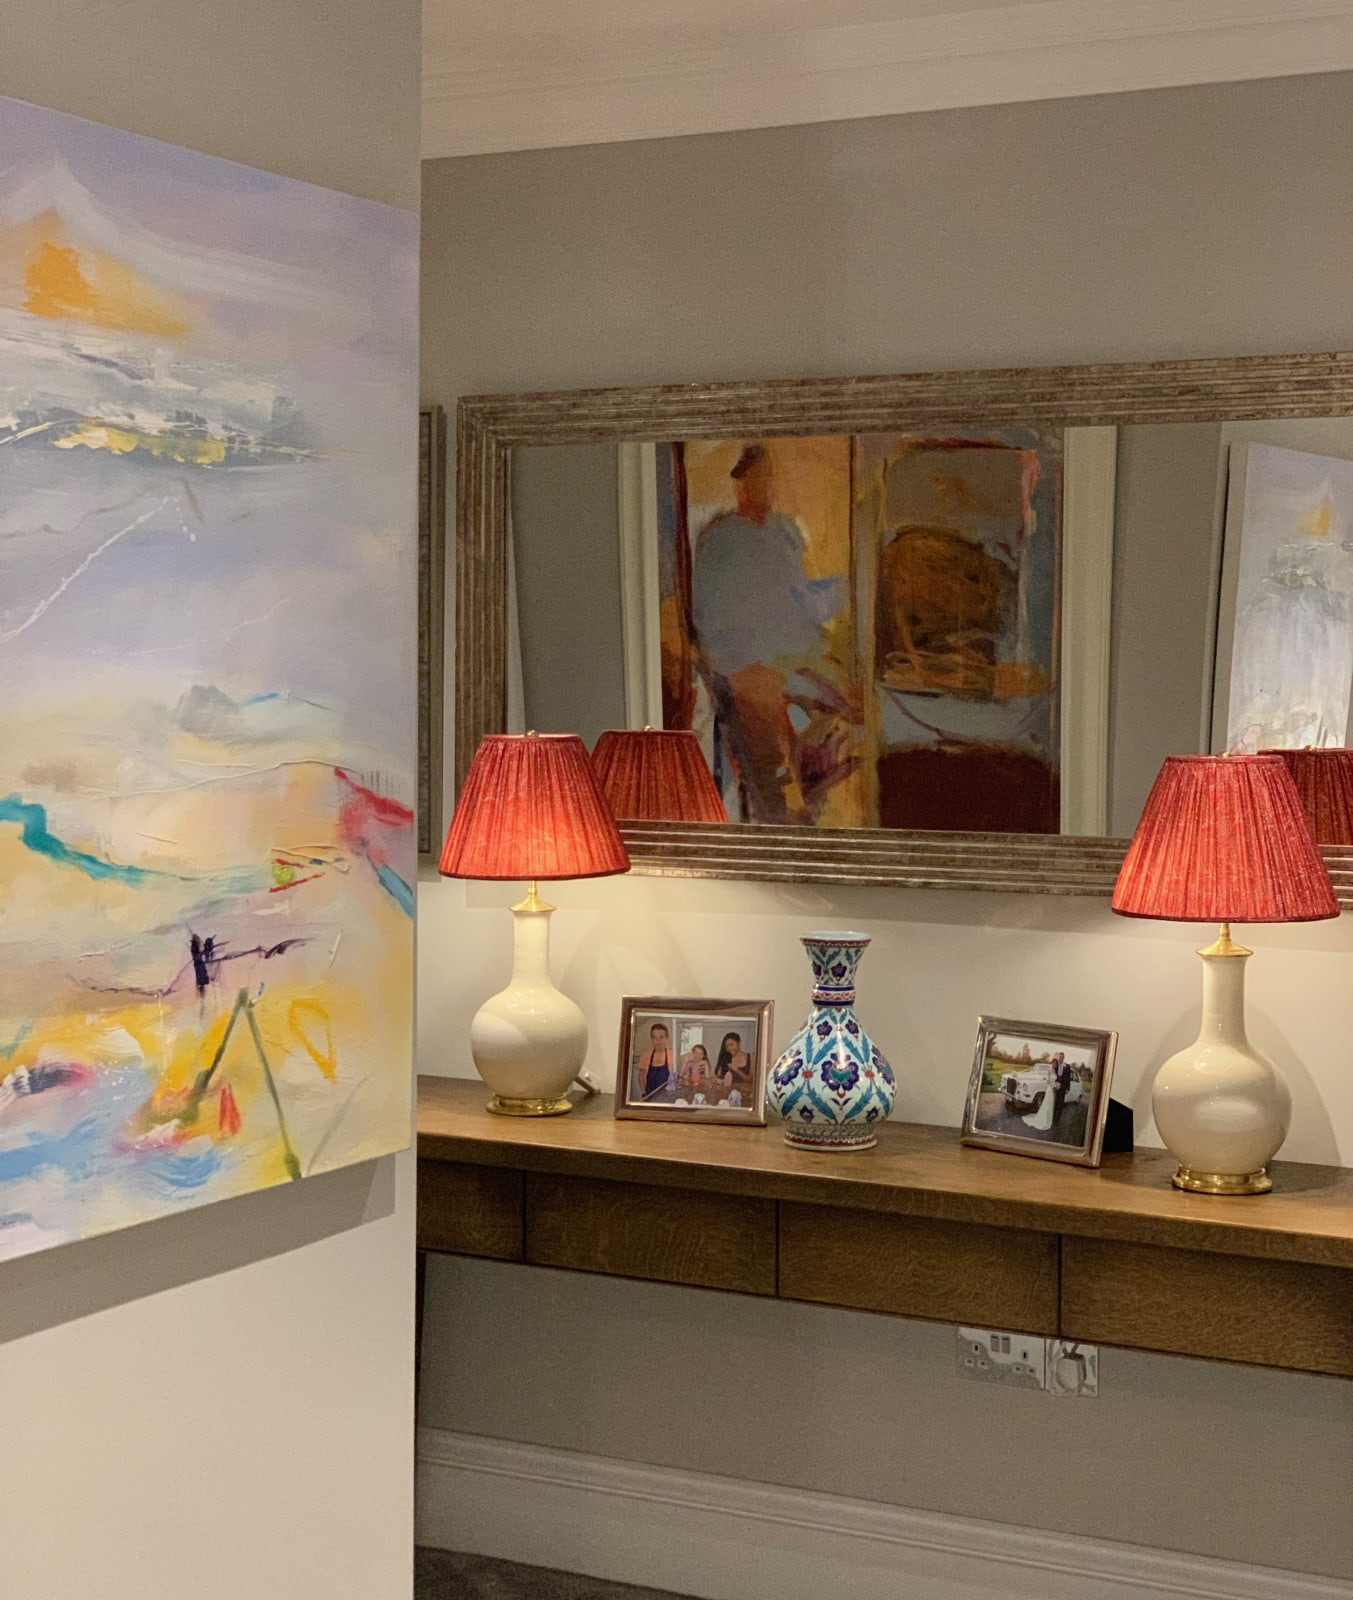 An eclectic mix of paintings, with an abstract by Heidi Koenig and a self portrait by Rose Hilton